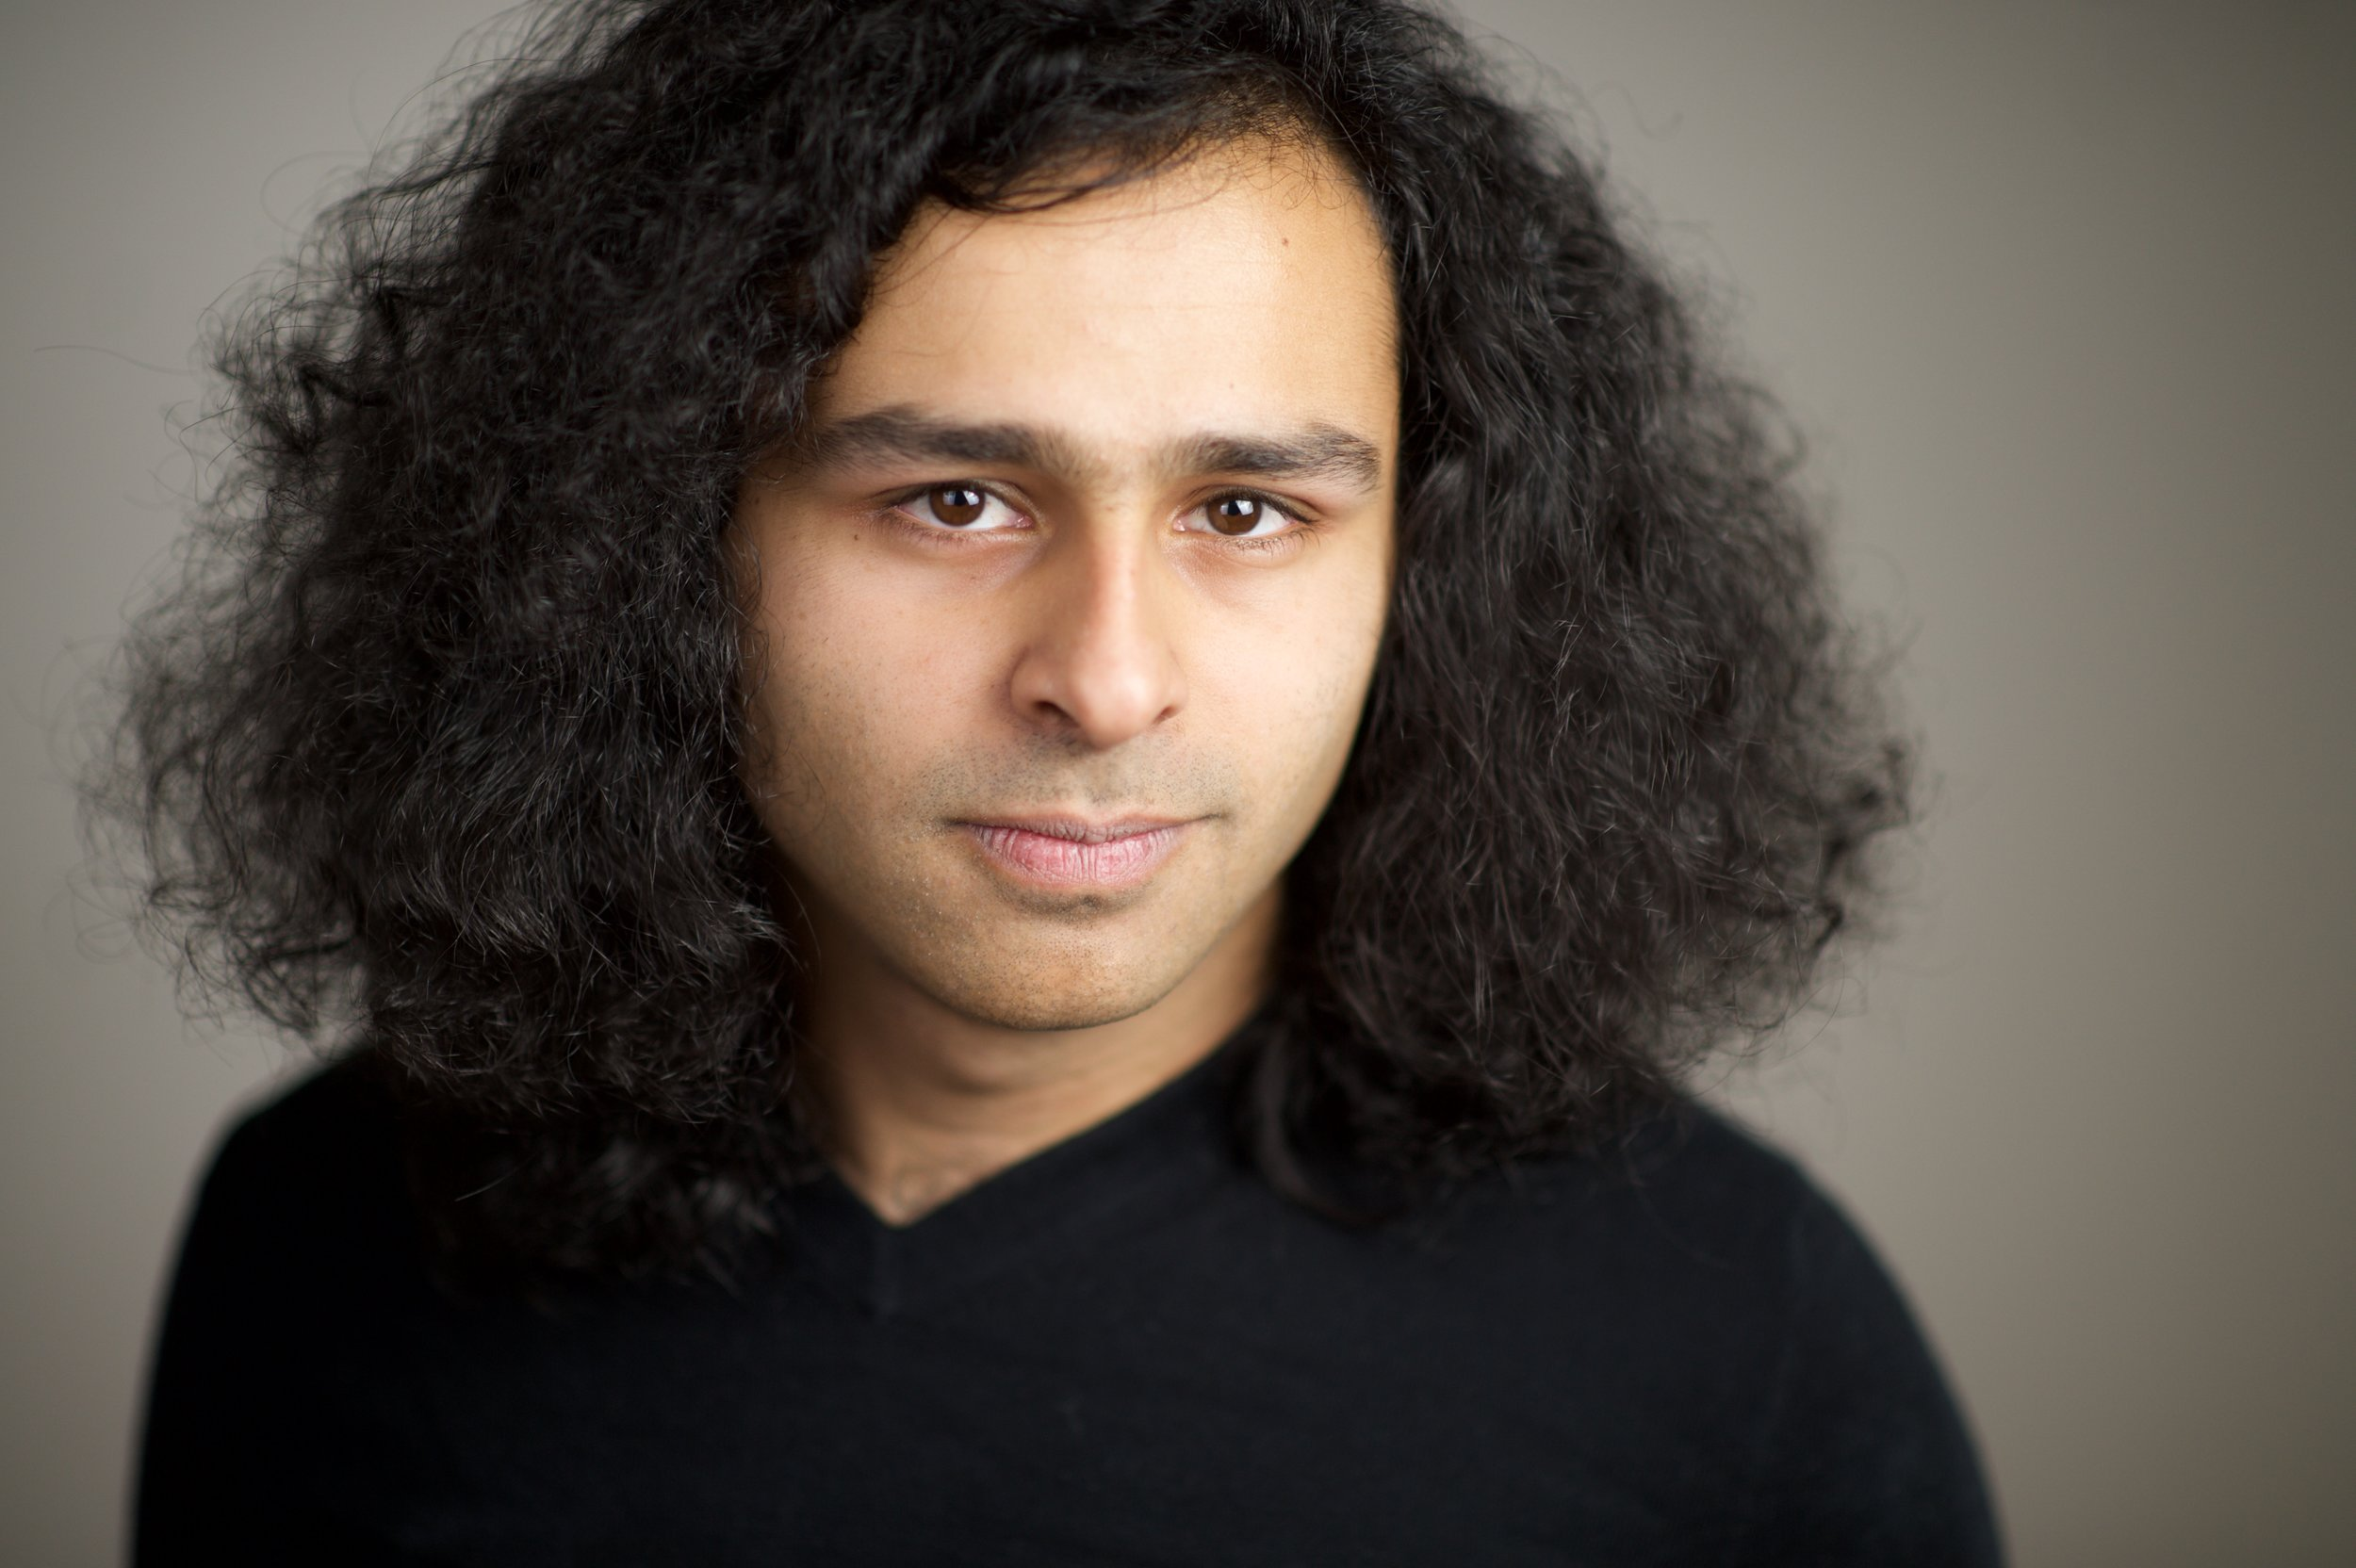 Arif Silverman (Writer/Performer)  is a native New Yorker and recent graduate of Oberlin College where he studied Theater. His first one man show  Nolie Min Tangible  has been performed at the Dixon Place Lounge, the Grafton Correctional Facility, and Oberlin College.Other recent acting credits include  Old Turtle and the Broken Truth  (Rebel Playhouse),  A Midsummer Night's Dream  (Fools and Kings),  The Tempest  (New Art Theater),  An Octoroon  (Dobama Theater),  Romeo and Juliet  (The New Euripides),  Treasure in NYC  (Kaiser's Room),  Spirits to Enforce  (Cleveland Public Theater), and  The Bacchae  (Edinburgh Fringe Festival) .          Susanna Wolk (Director)  graduated from Harvard in 2014 where she studied English and Theater. Since moving to NYC she has worked on the Broadway productions of  Significant Other ,  Waitress , and  Finding Neverland , and assisted on productions at Second Stage, MCC, Williamstown Theatre Festival, and American Repertory Theater. Her work as a director has been seen at A.R.T.'s Loeb Mainstage, Williamstown Theatre Festival, Club OBERON, Ugly Rhino, 54 Below, Don't Tell Mama, and more. Associate Director of  Ragtime  on Ellis Island. Upcoming: John Patrick Shanley's  The Dreamer Examines His Pillow  at the 13th Street Repertory Theater.